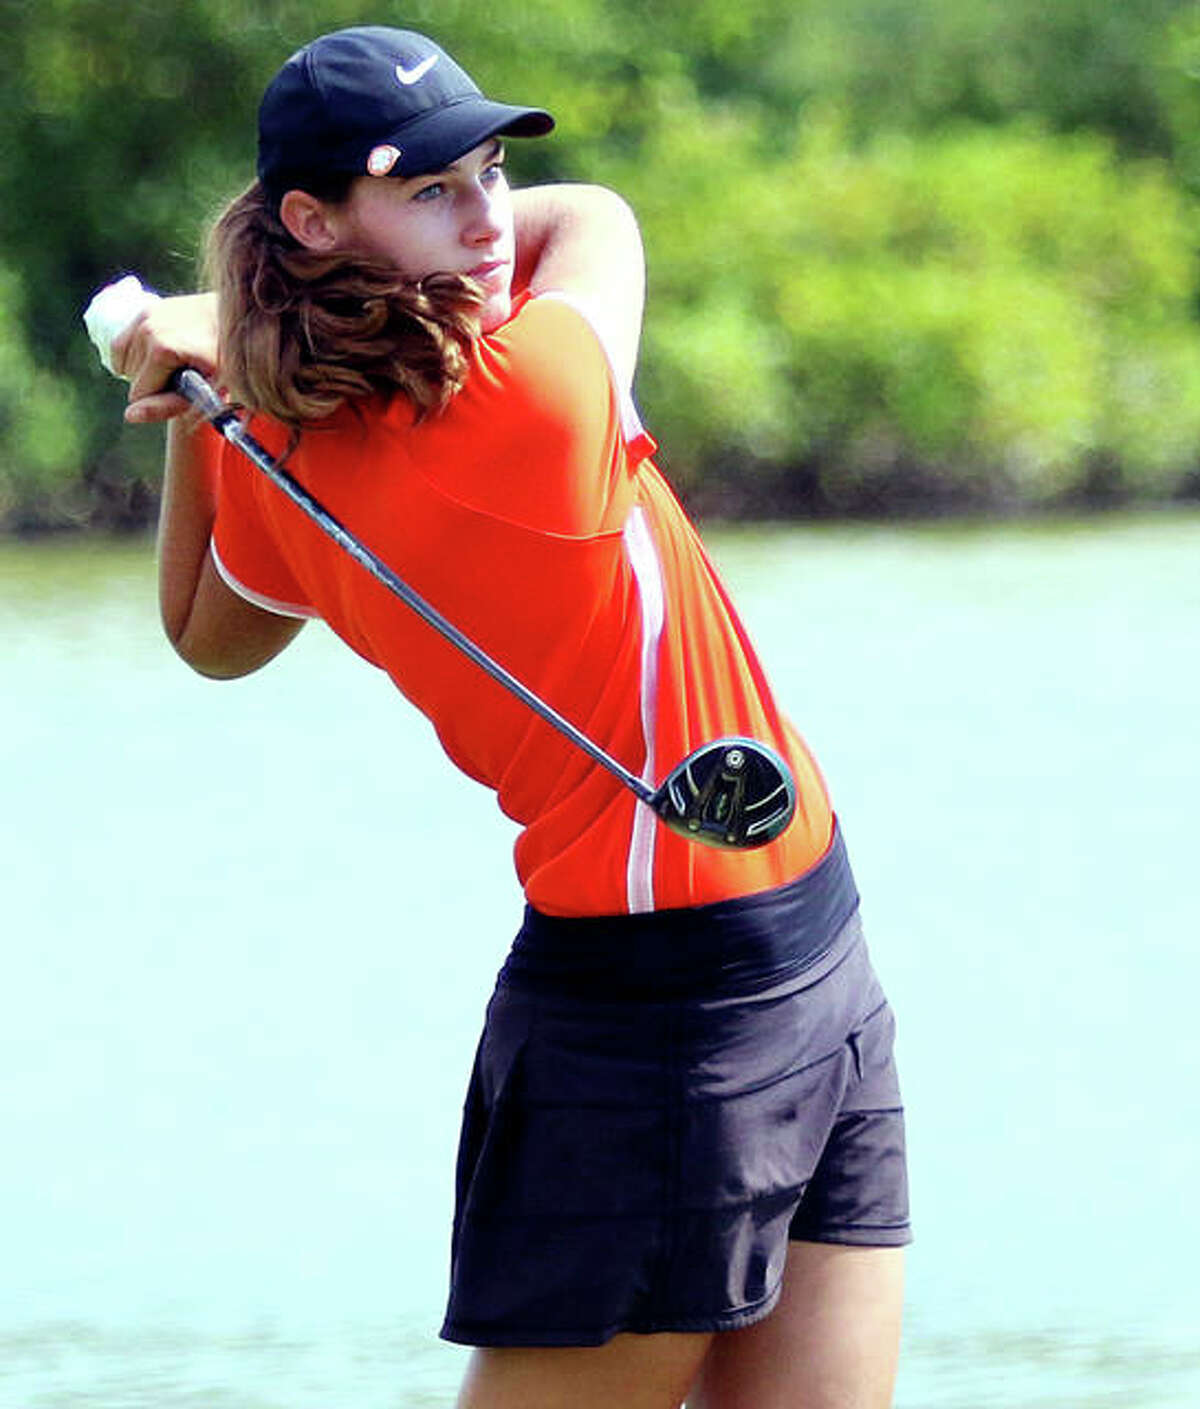 Edwardsville sophomore Nicole Johnson watches her drive to start her second nine on hole No. 1 Tuesday at the Madison County Tourney at The Legacy in Granite City. Johnson, the defending county champion, shot 73.